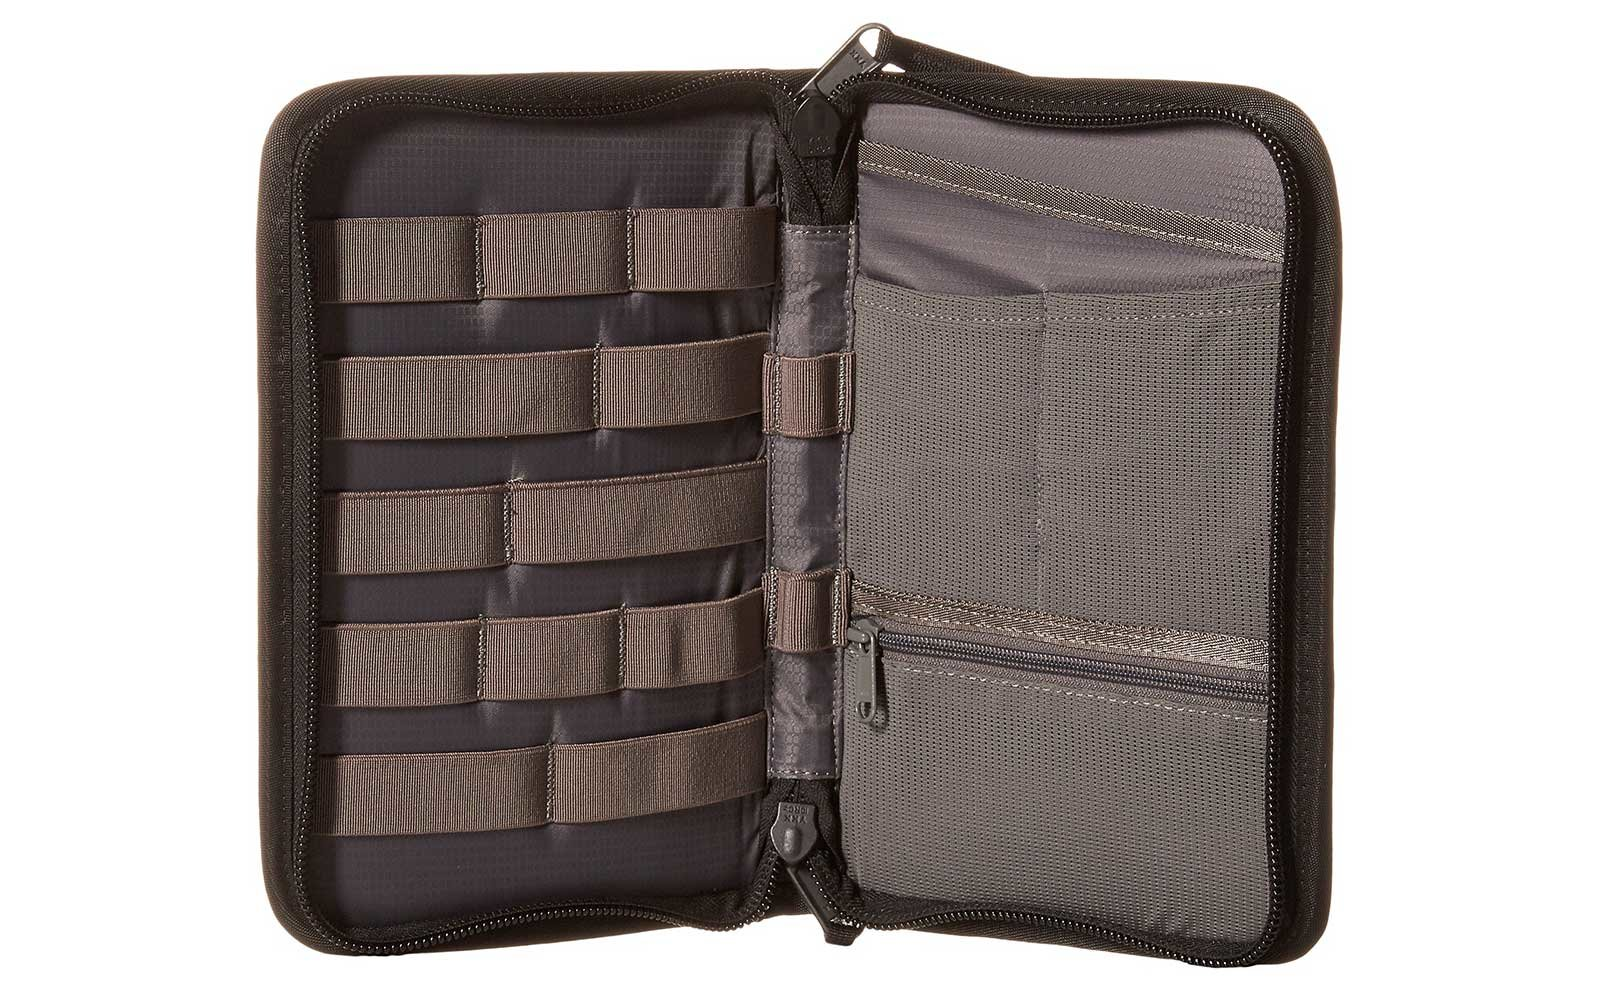 Timbuk2 Travel Organizers